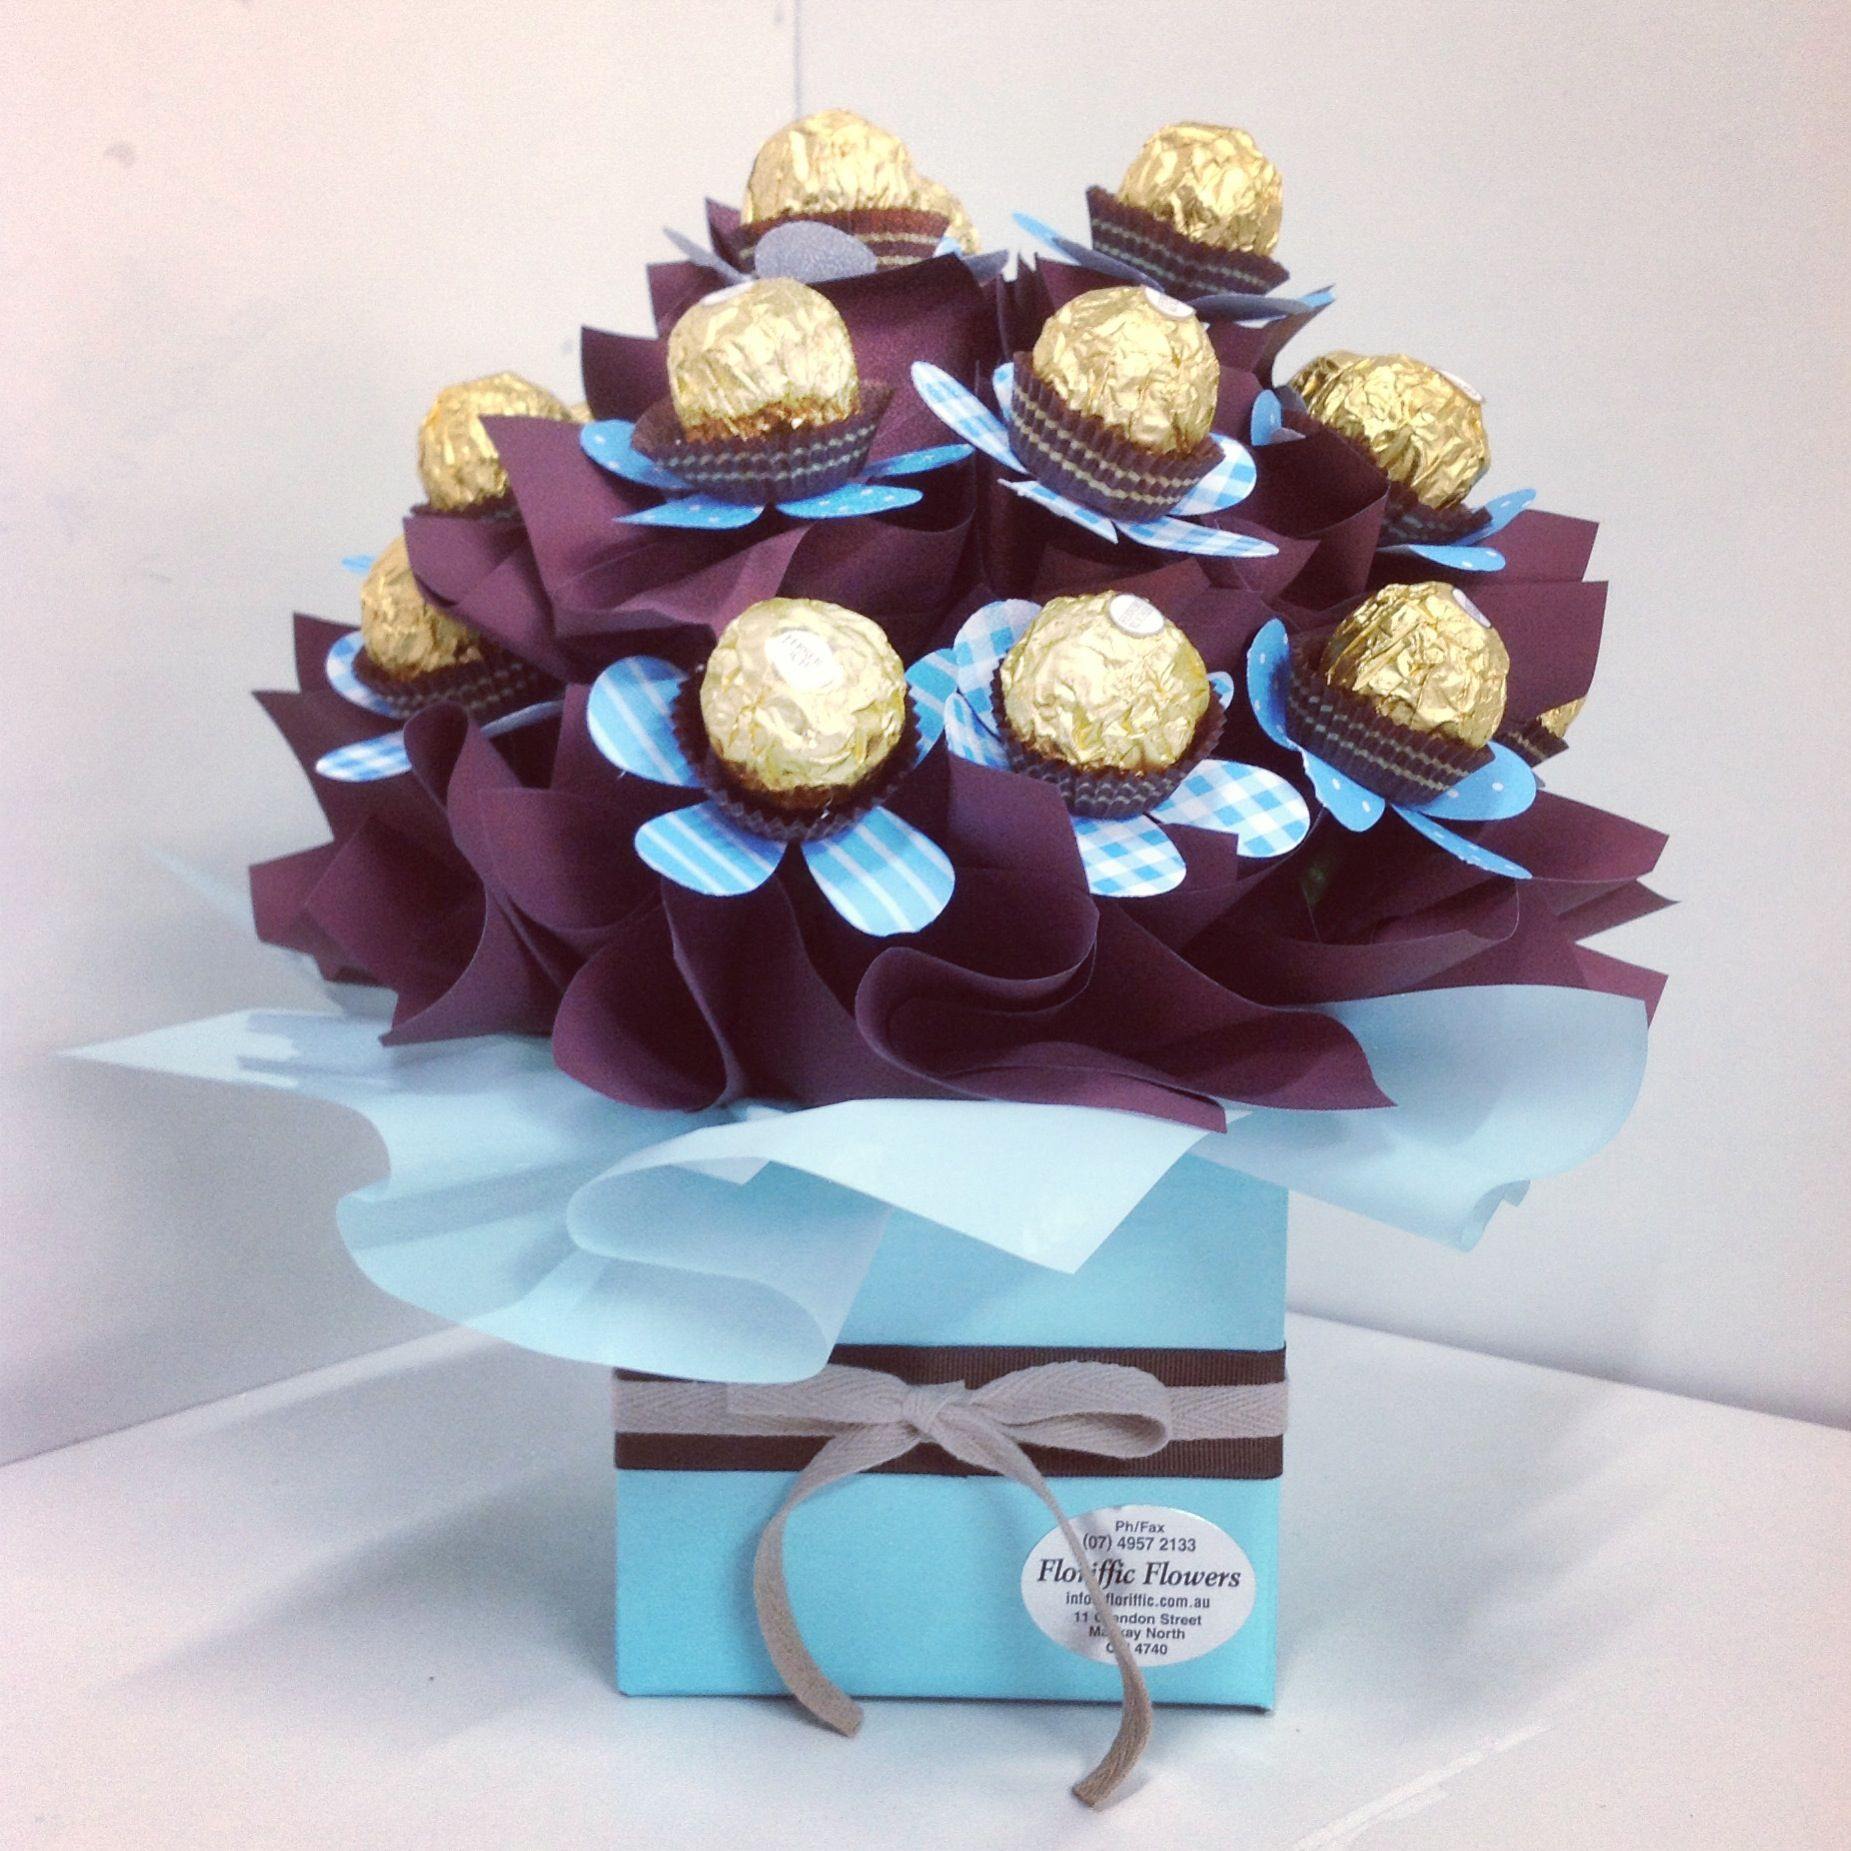 Chocolate bouquet on pinterest candy flowers bouquet of chocolate - Chocolate Bouquet Chocolate Flowerschocolate Bouquetcandy